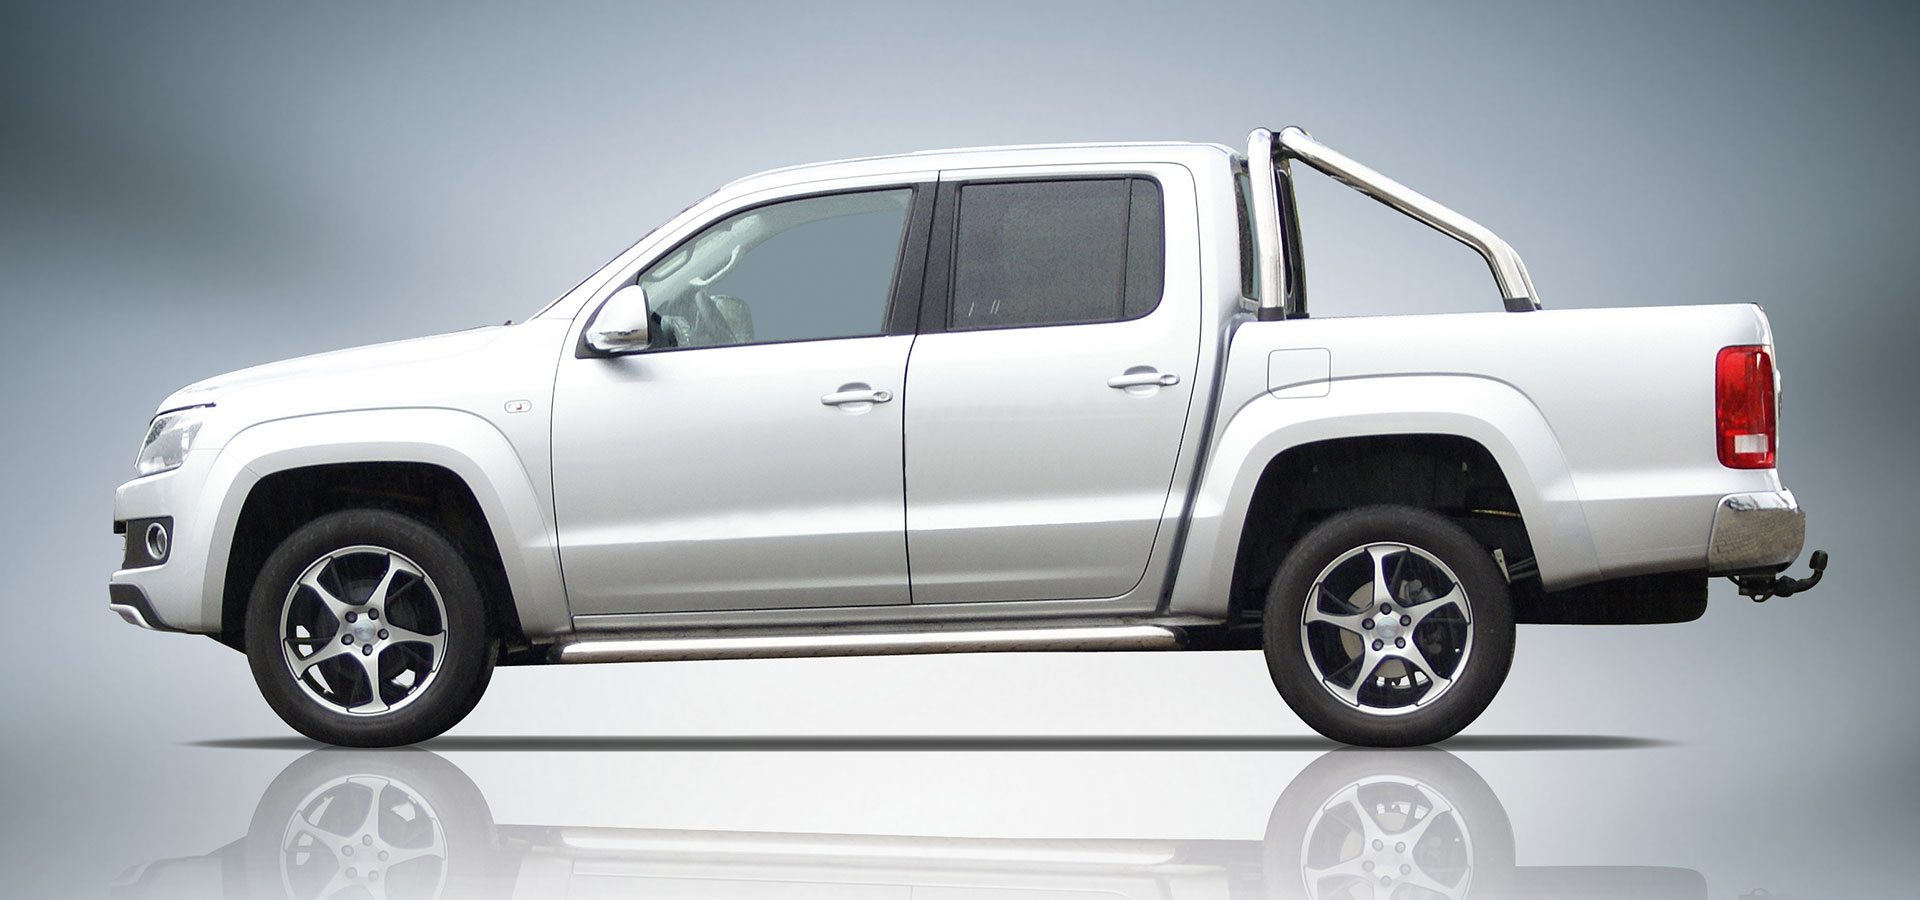 vw amarok abt sportsline. Black Bedroom Furniture Sets. Home Design Ideas